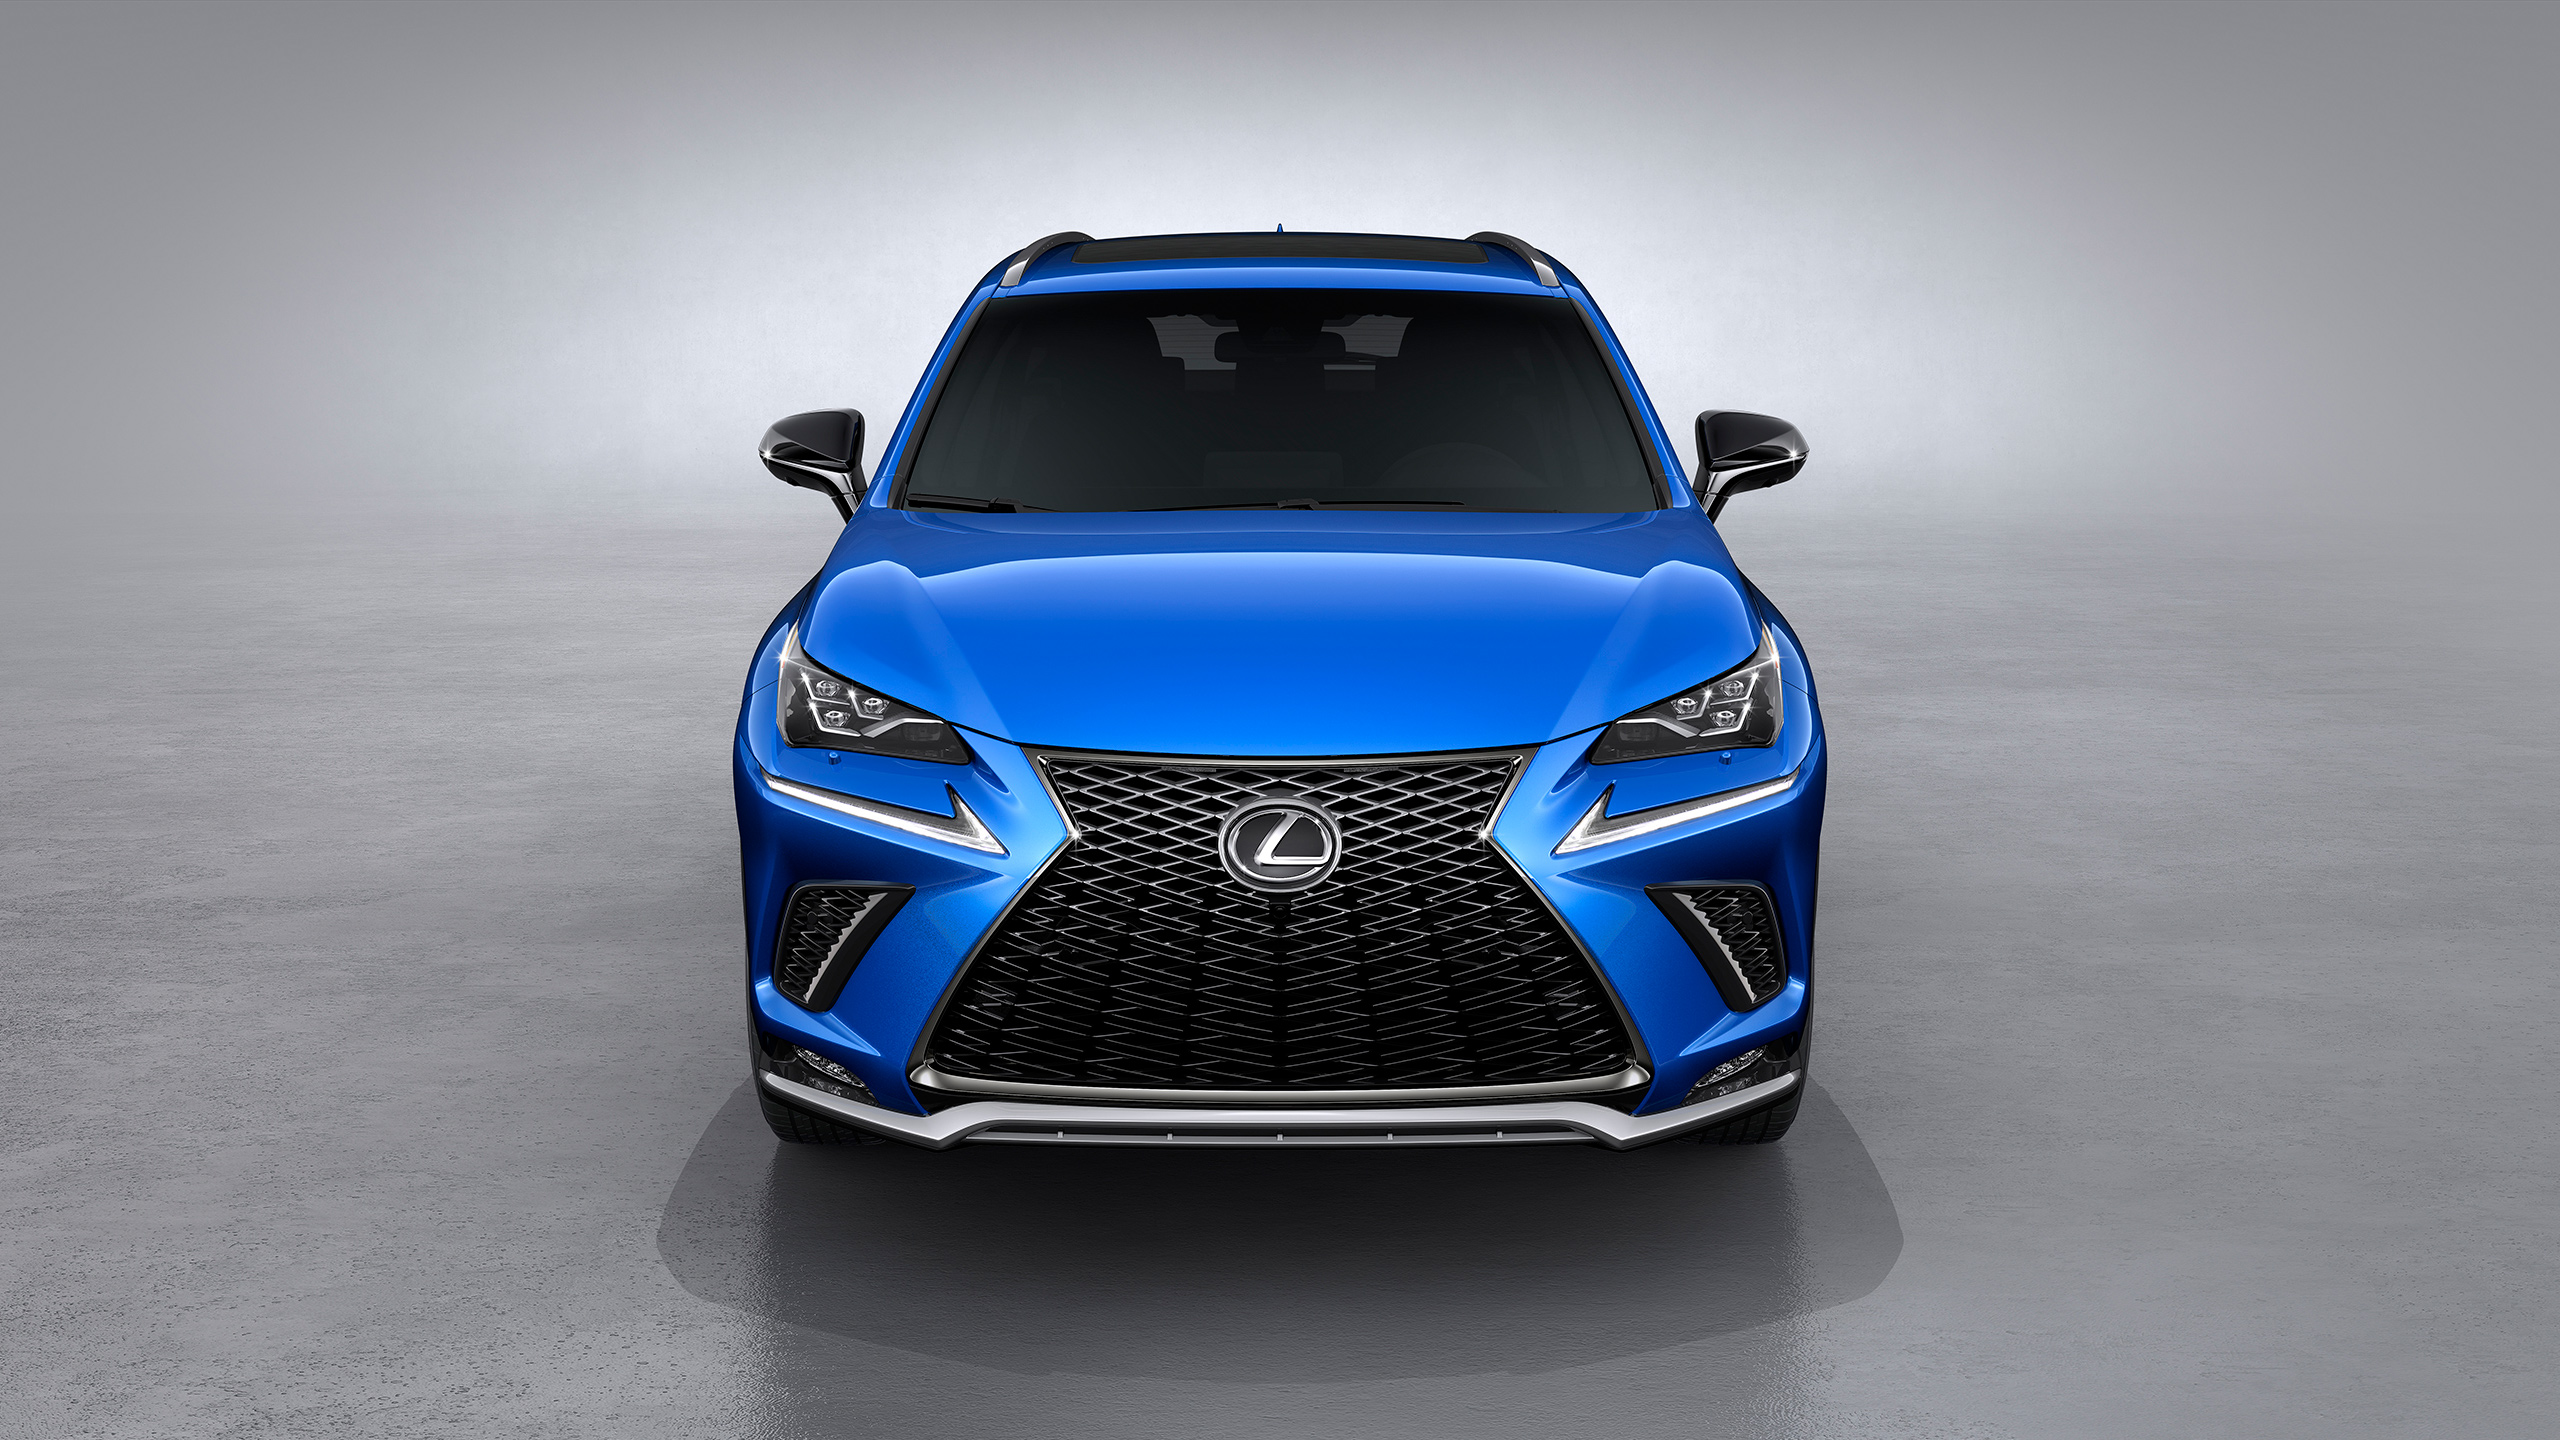 2017 lexus nx luxury crossover 2 wallpaper hd car wallpapers. Black Bedroom Furniture Sets. Home Design Ideas